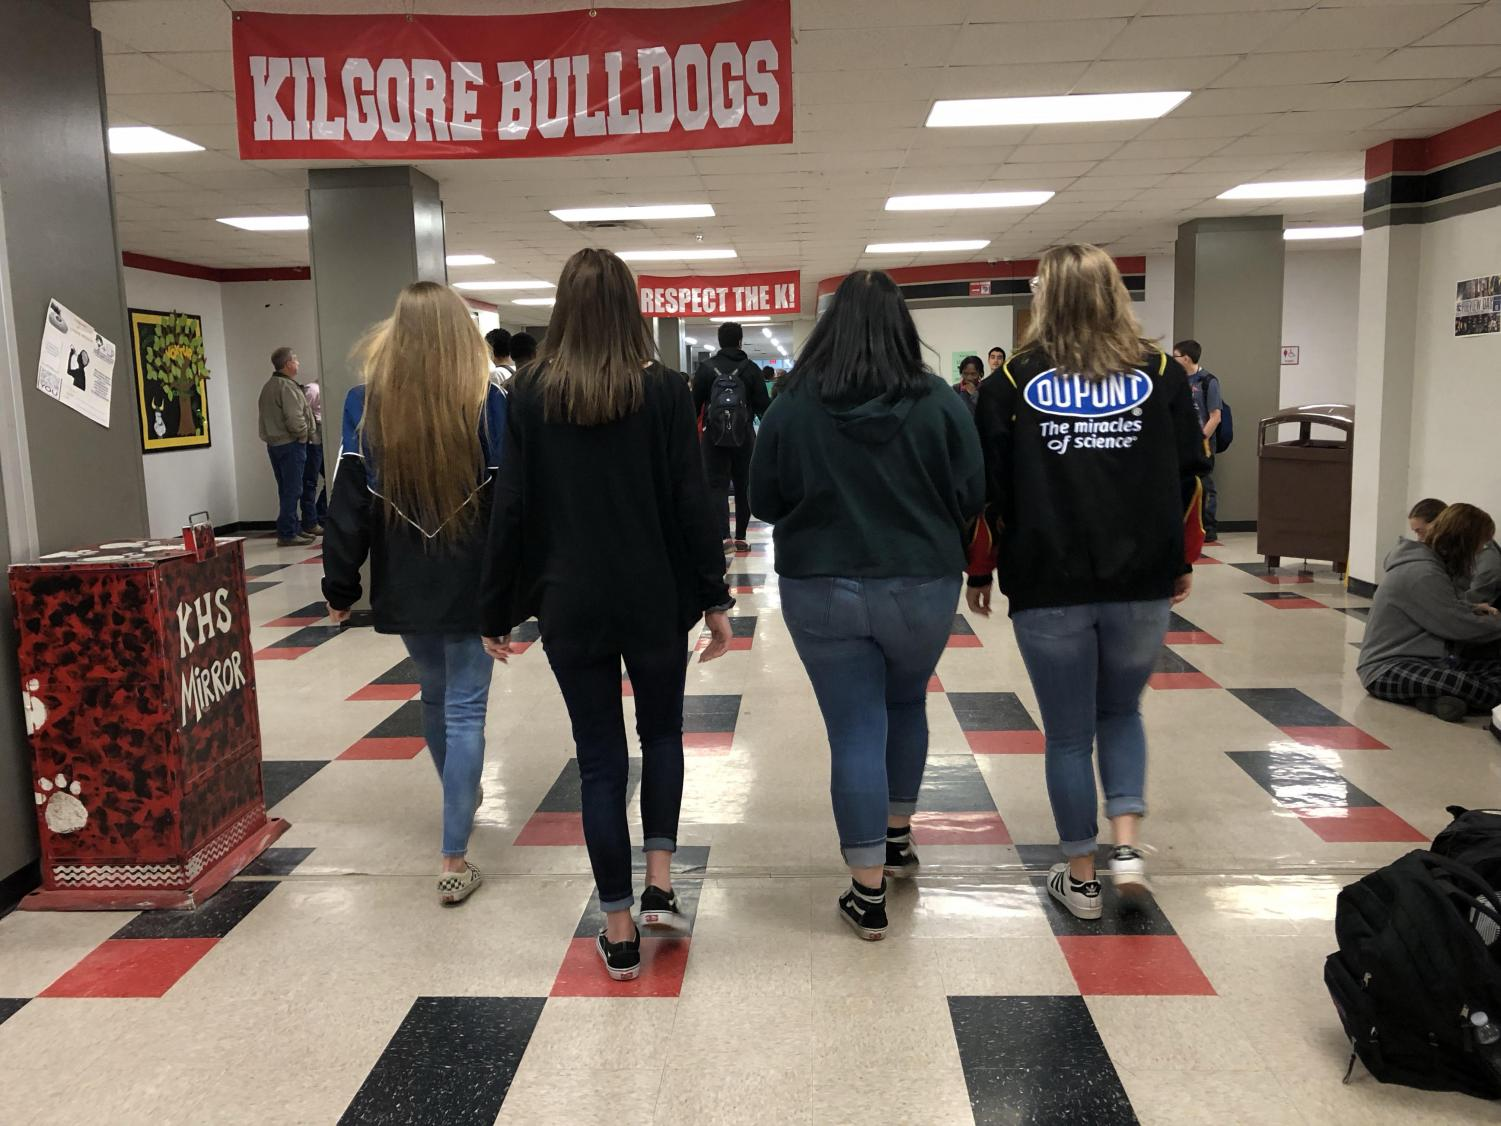 Sophomores Alexis M. Anderson, Halie Hanks, Carley Dollins and Shelby Maring walk away.